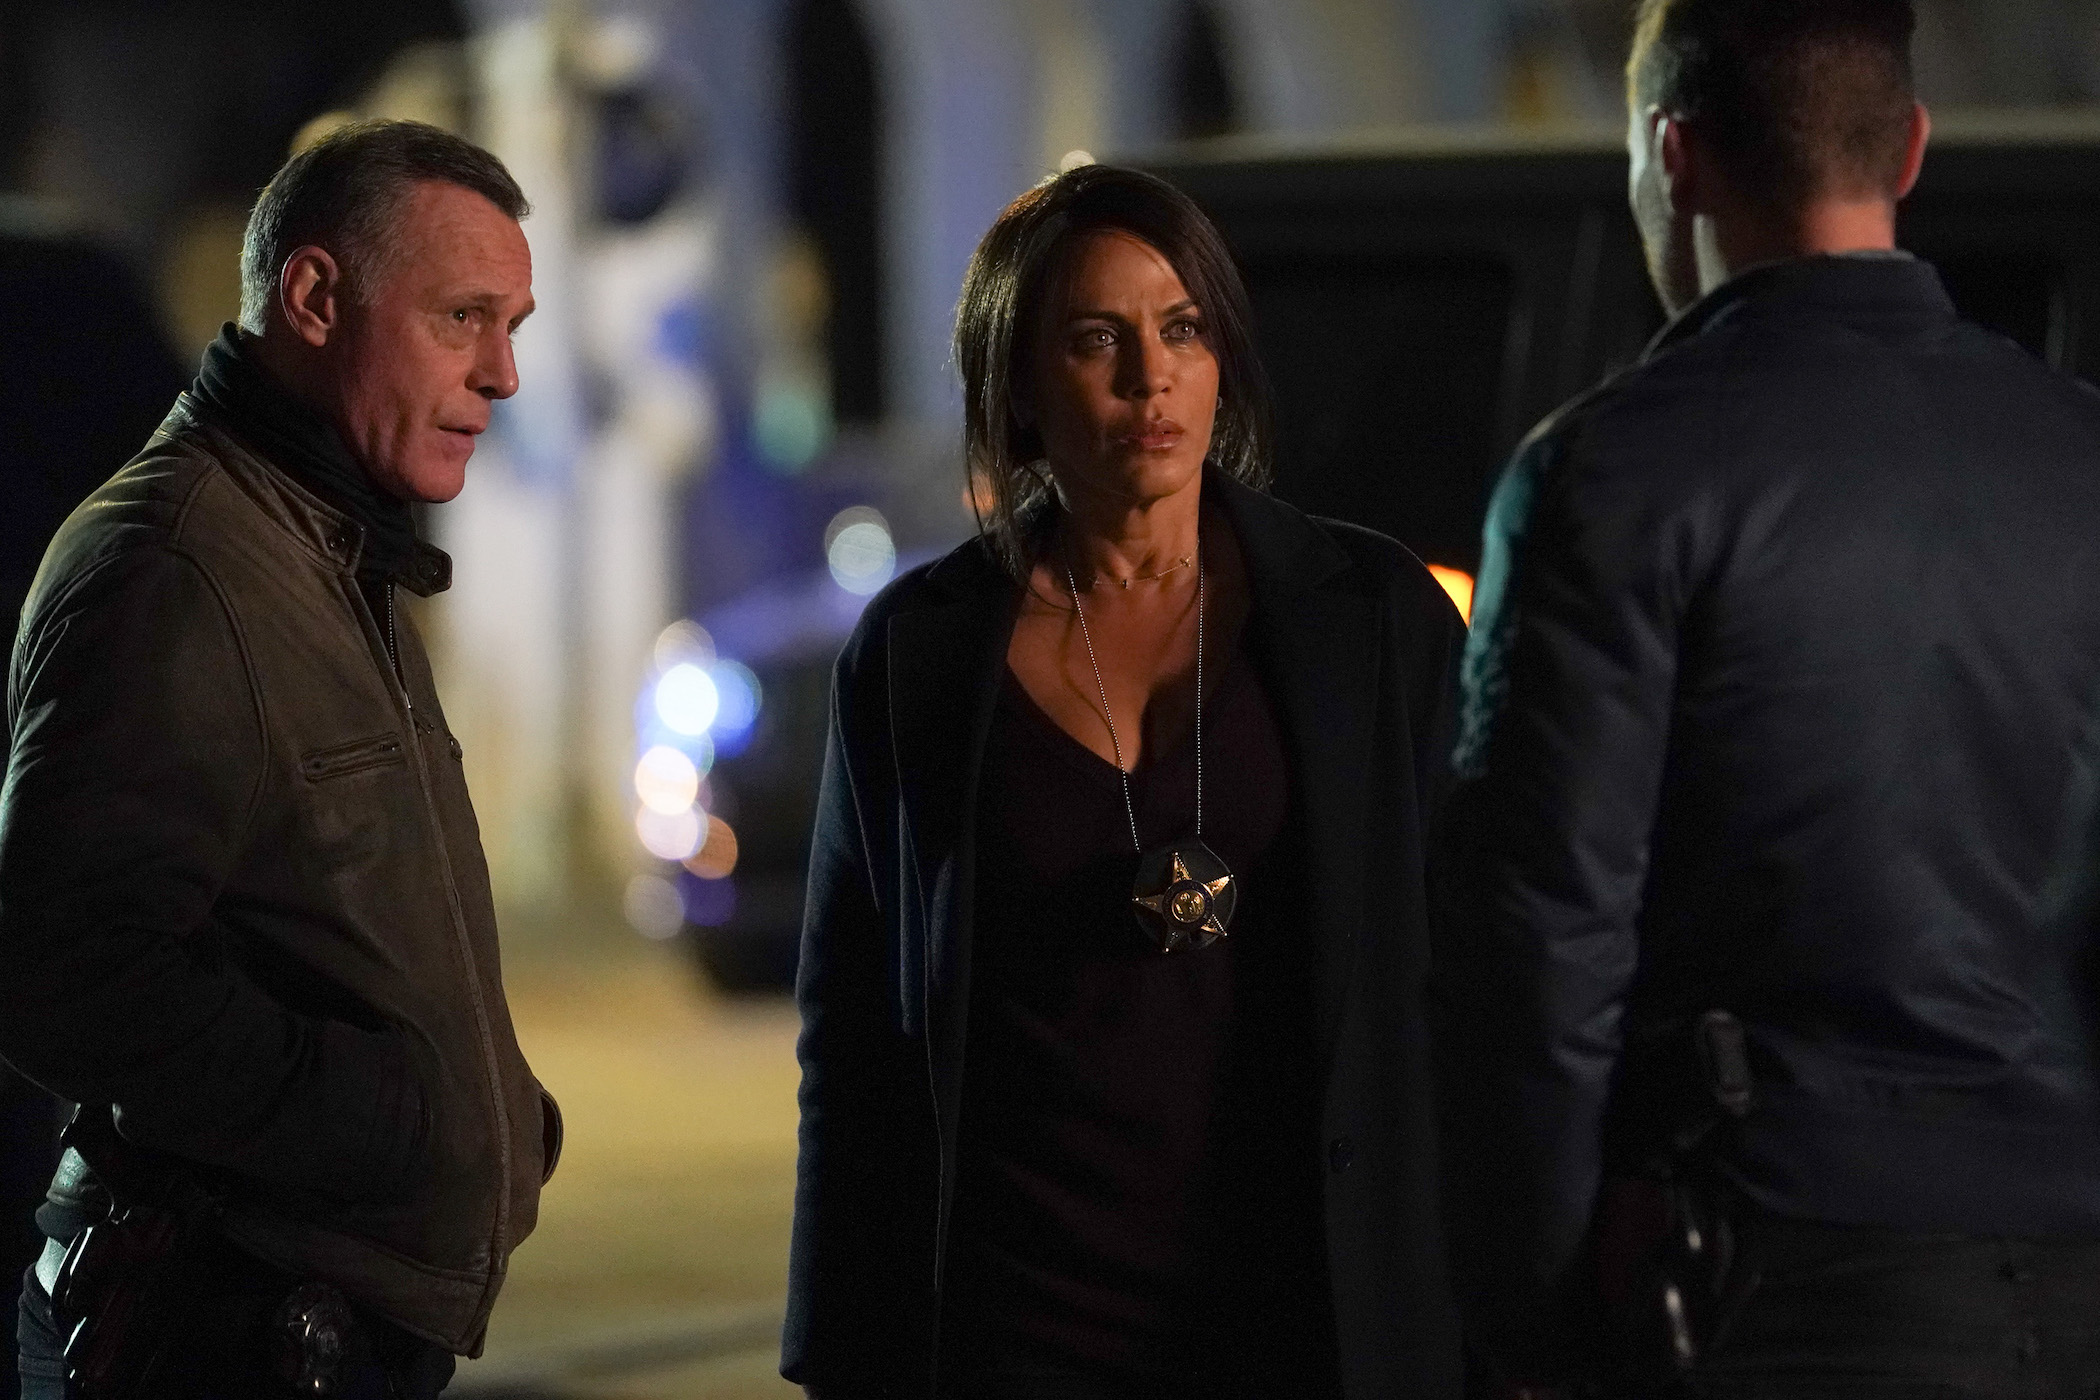 Jason Beghe as Hank Voight and Nicole Ari Parker as Samantha Miller in 'Chicago P.D.'